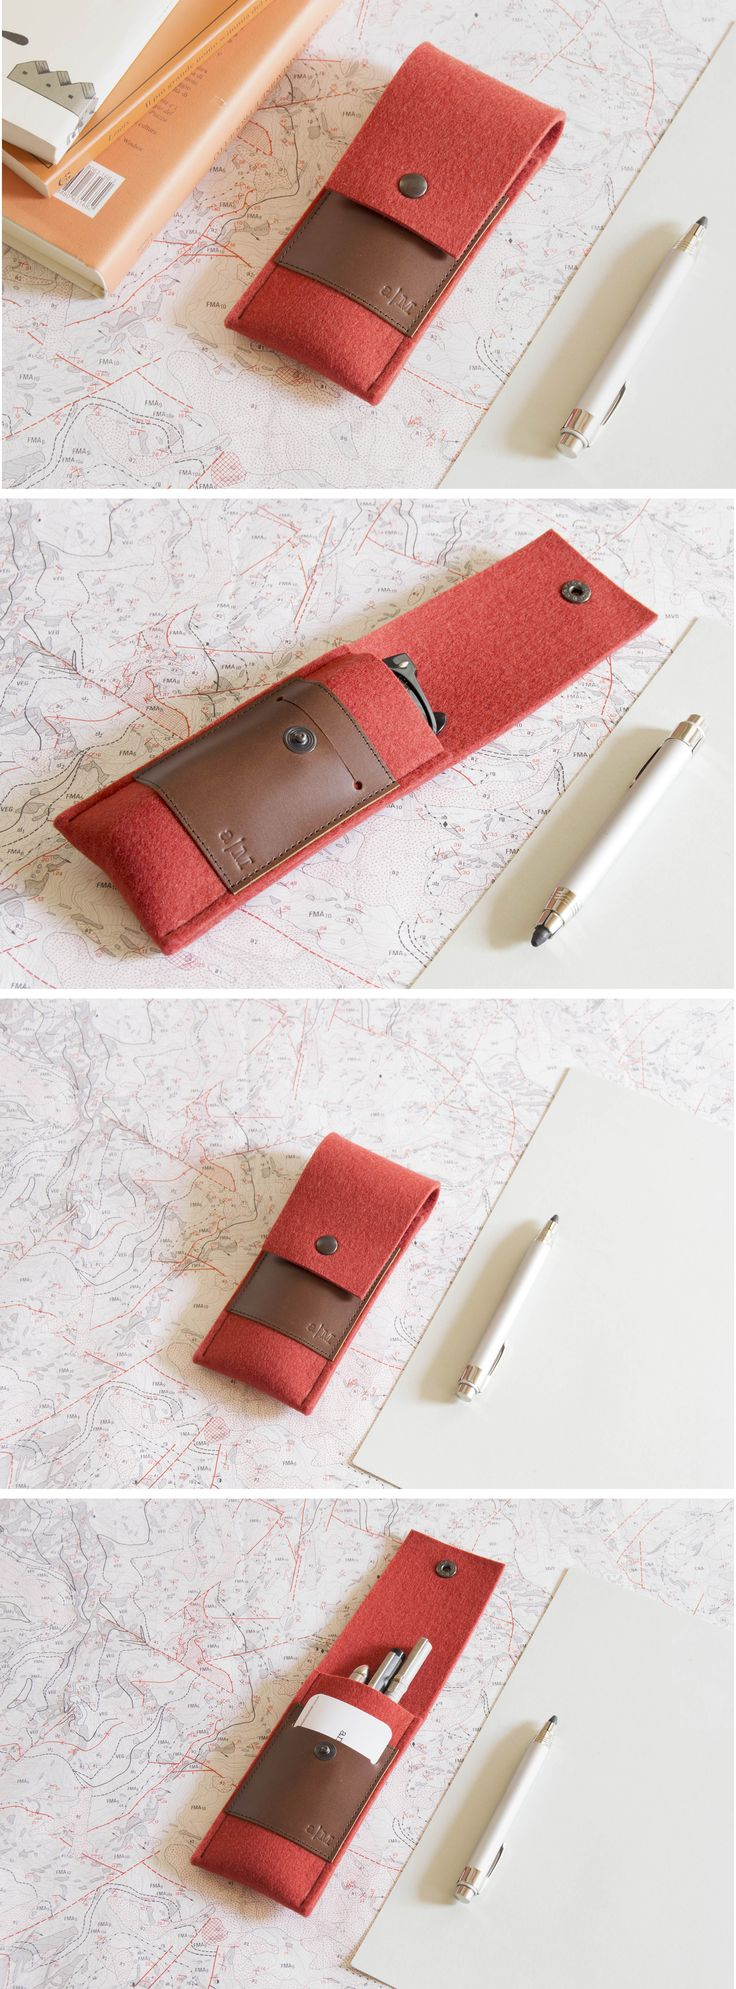 Wool felt and real leather case, pencilcase, penholder - orange and brown - made in Italy